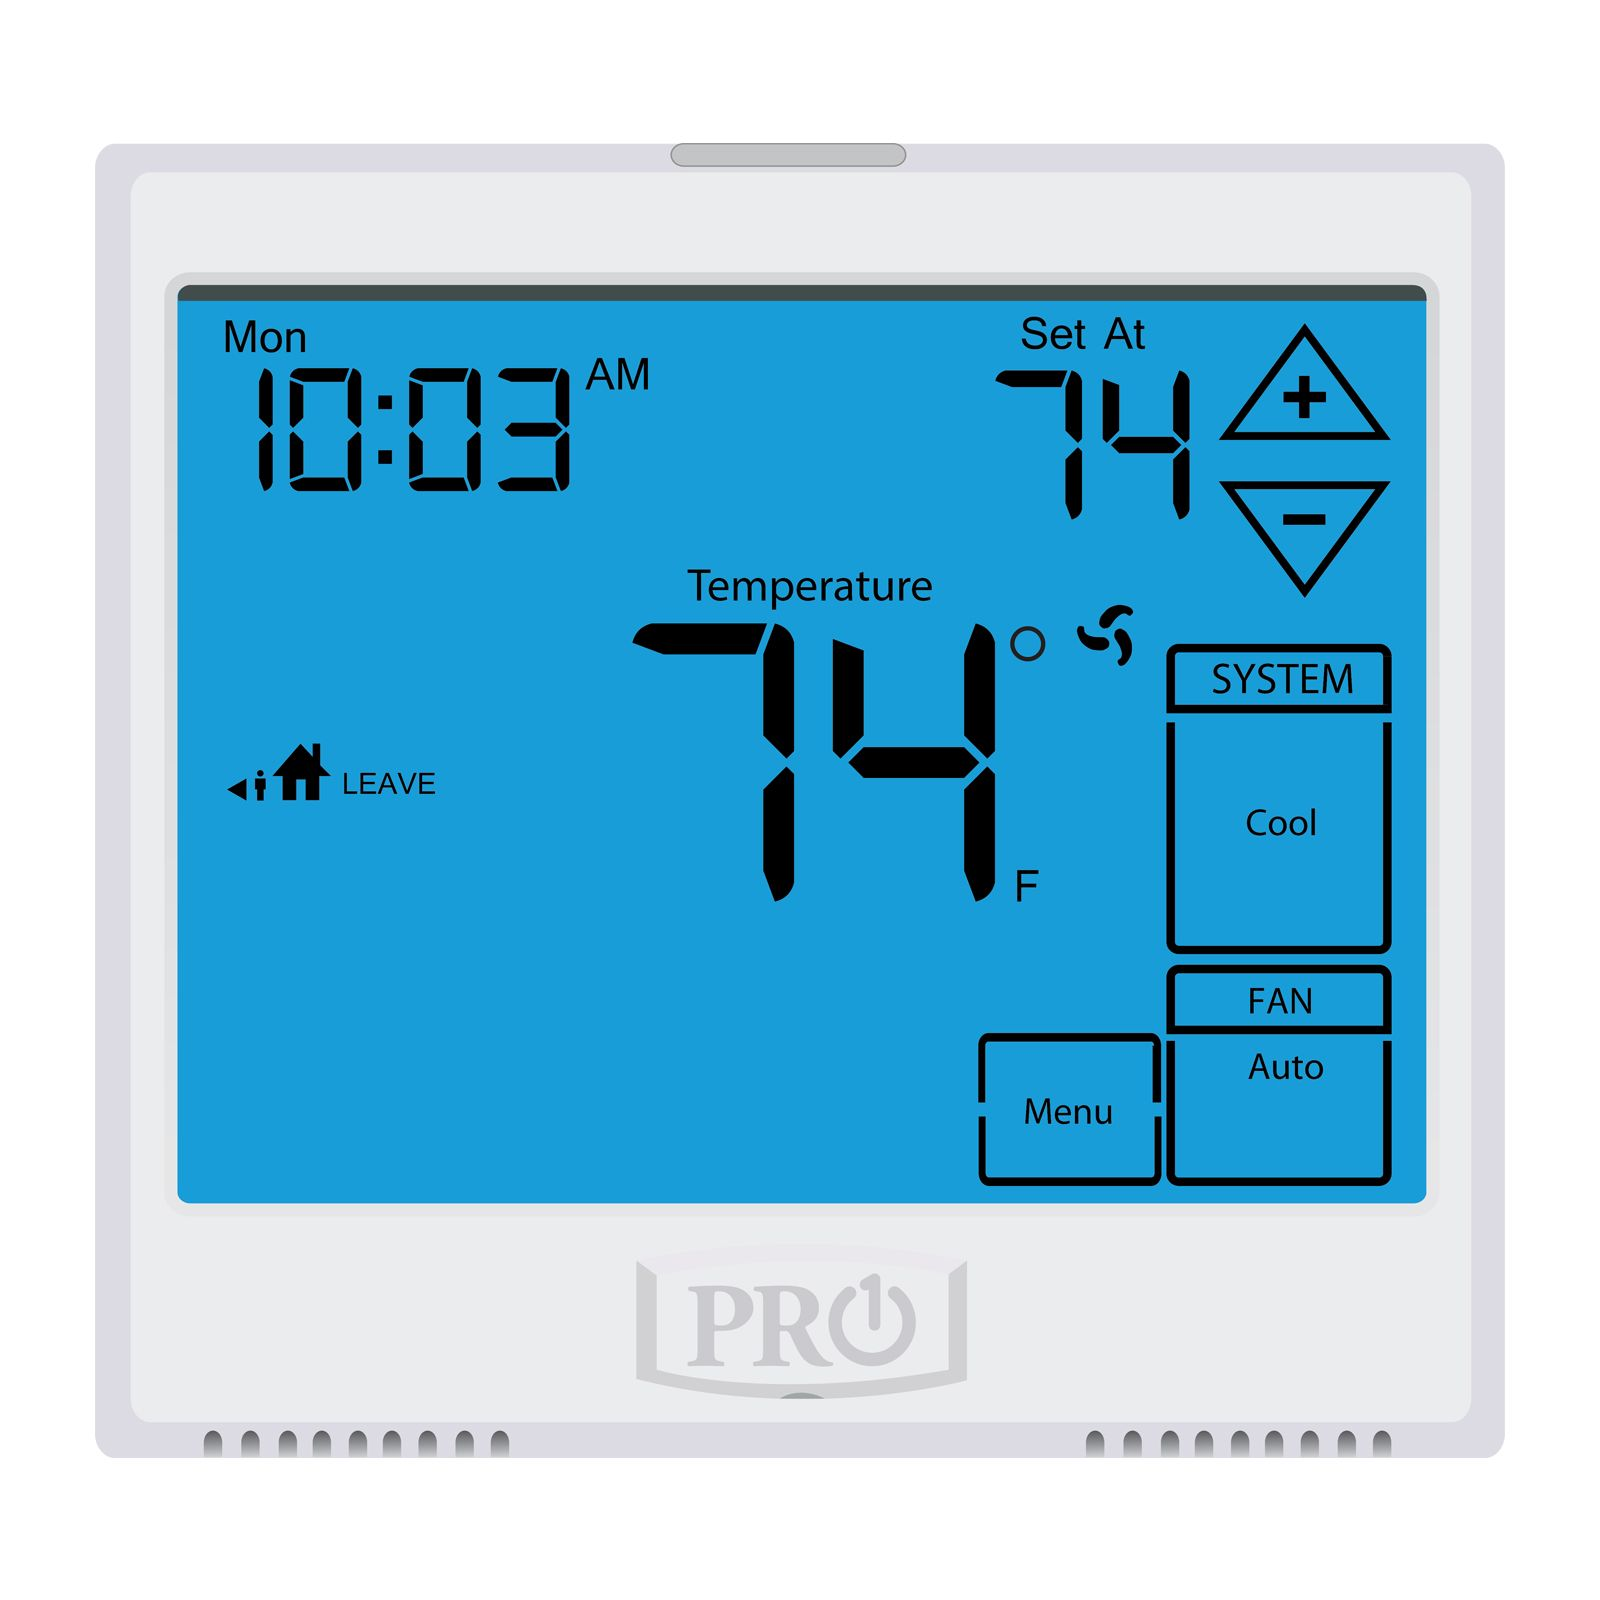 Pro1 T925 - Touchscreen, 5+1+1 Or 7 Day Or Non-Programmable Thermostat, 3H/2C Heat Pump With 13 Square Inch Display